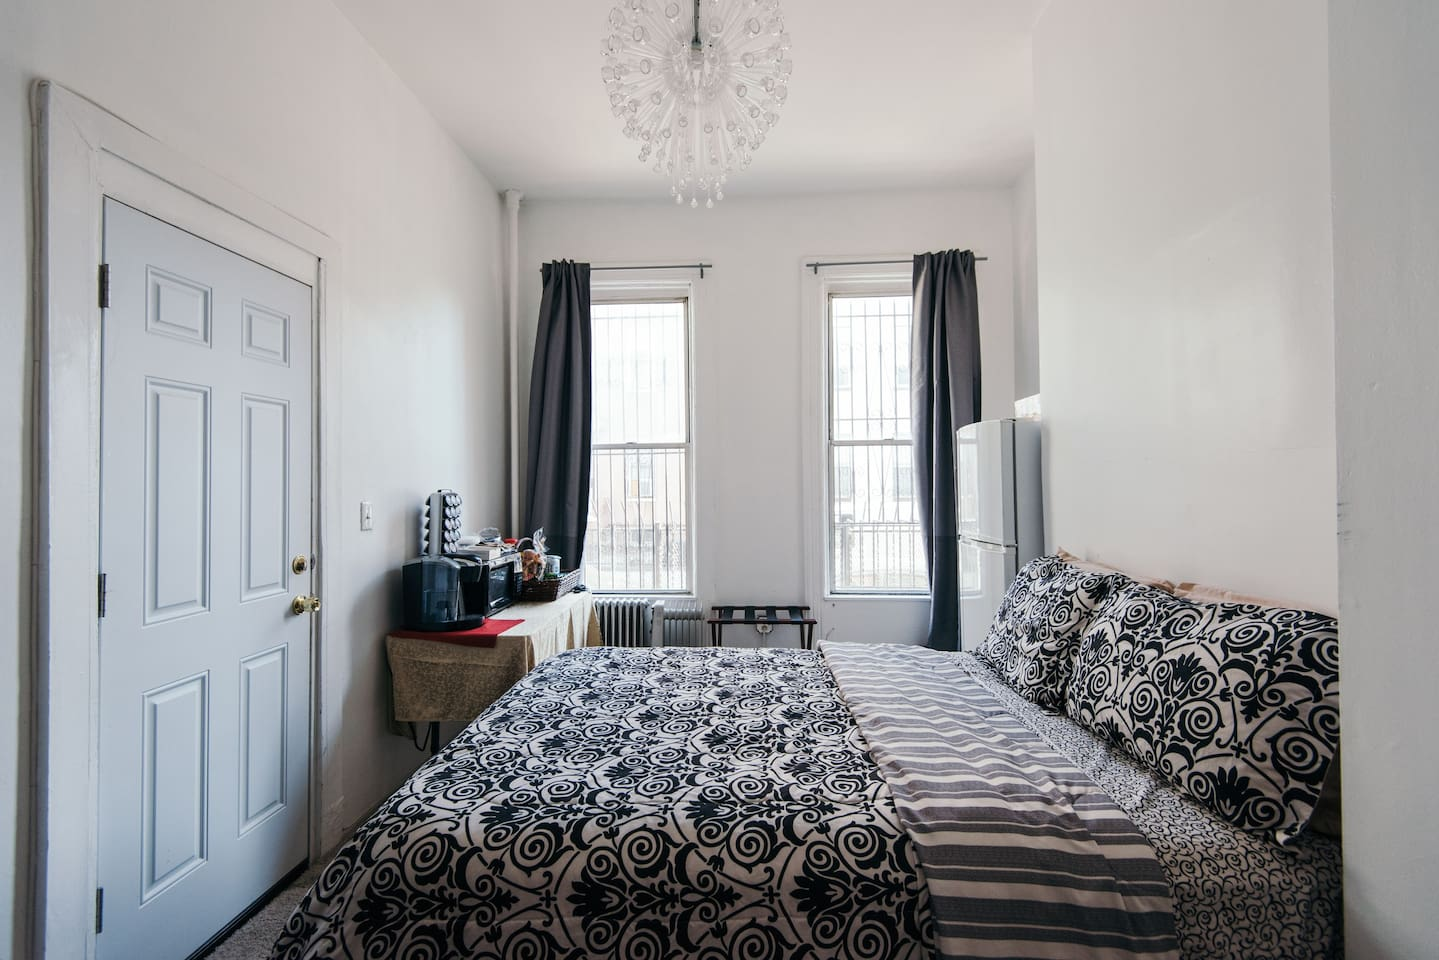 High ceilings and plenty of sun shine but if you like the dark, the curtains can completely block the light